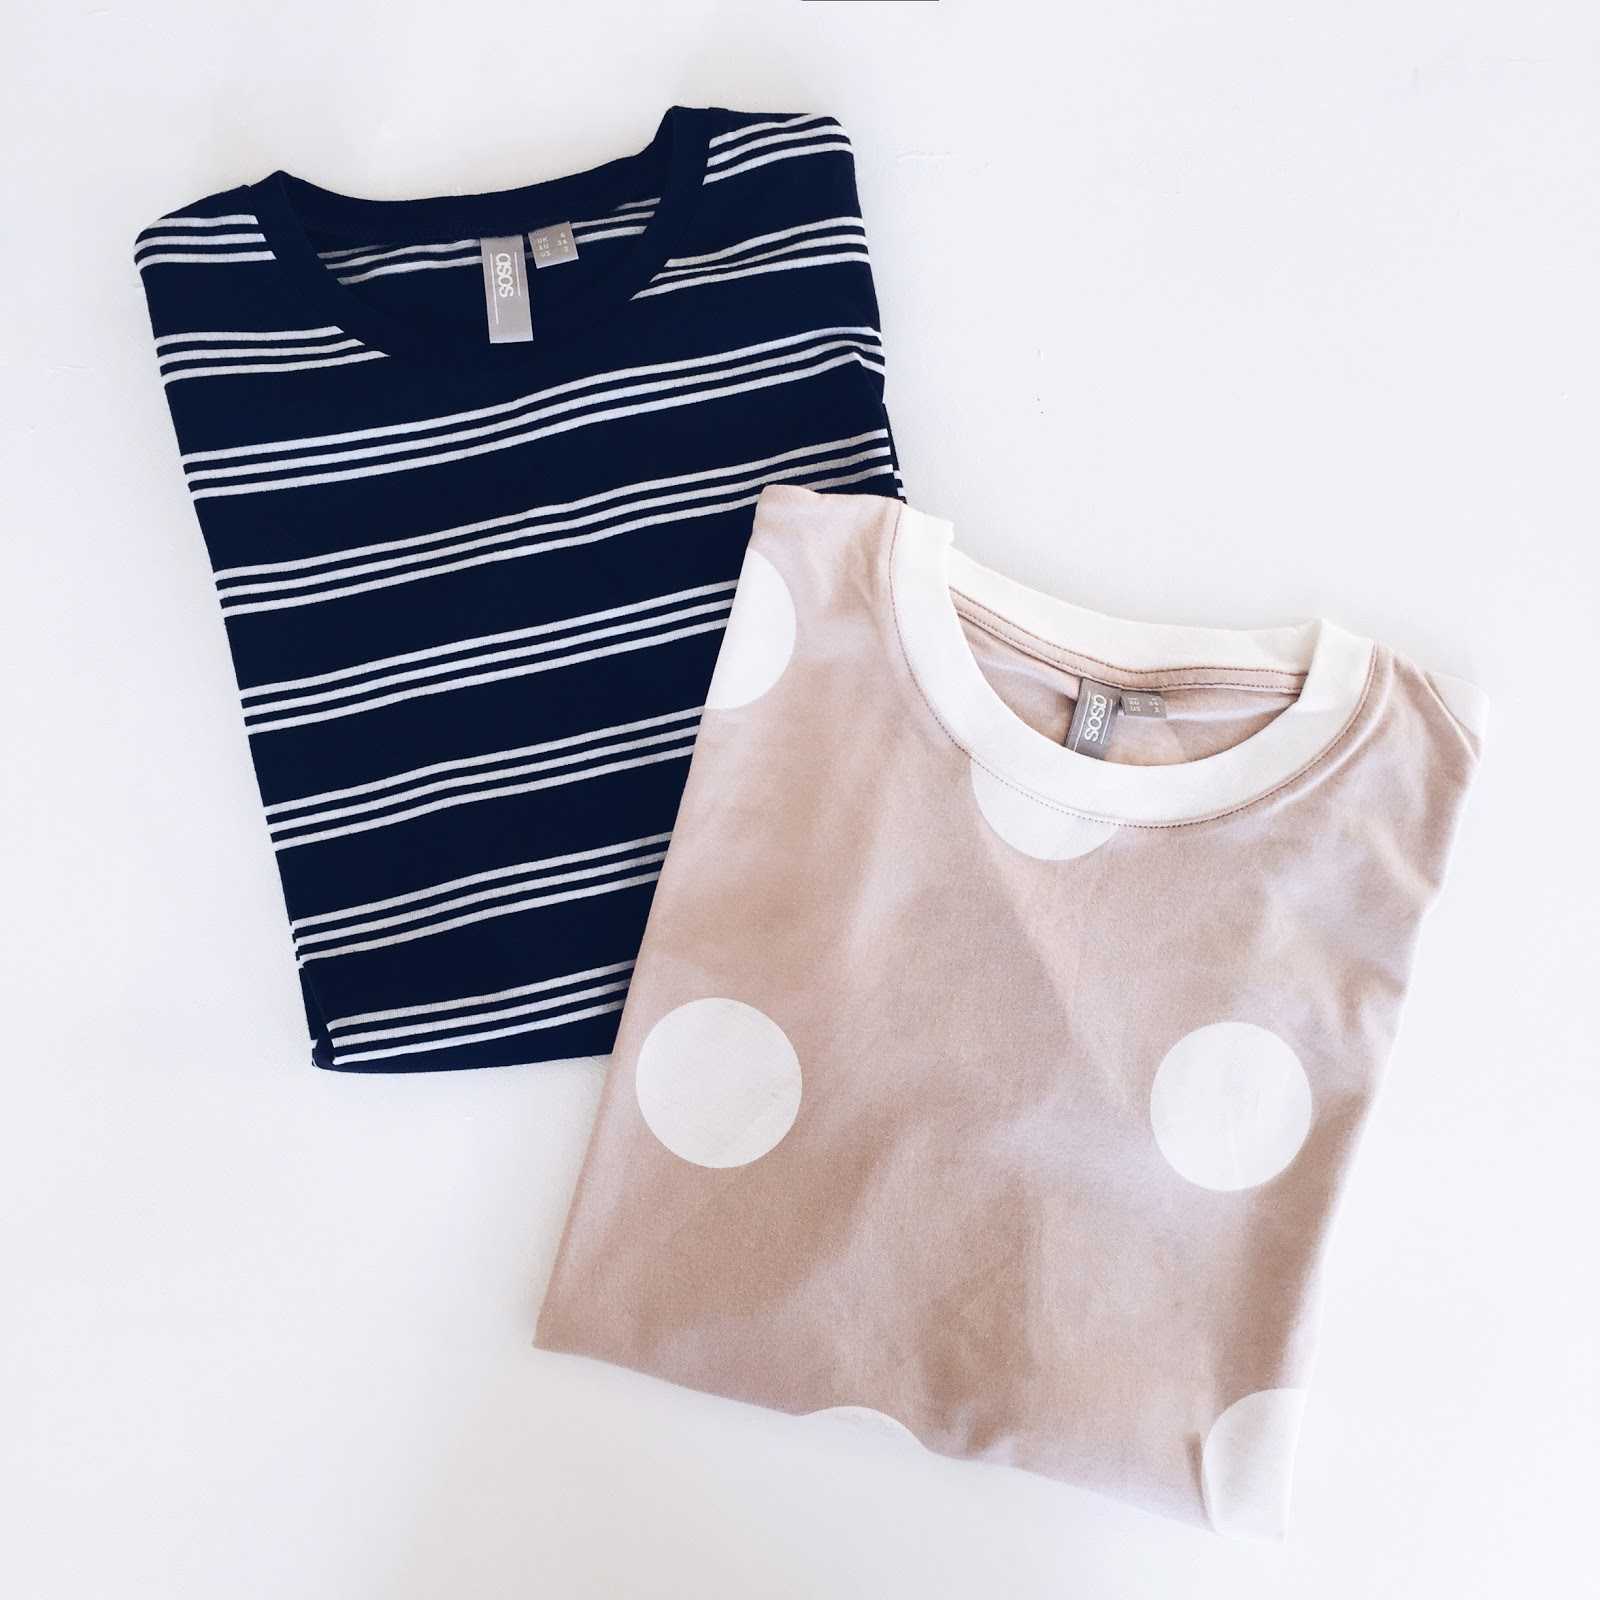 t-shirts from ASOS, Stripy t-shirt, spotty t-shirt